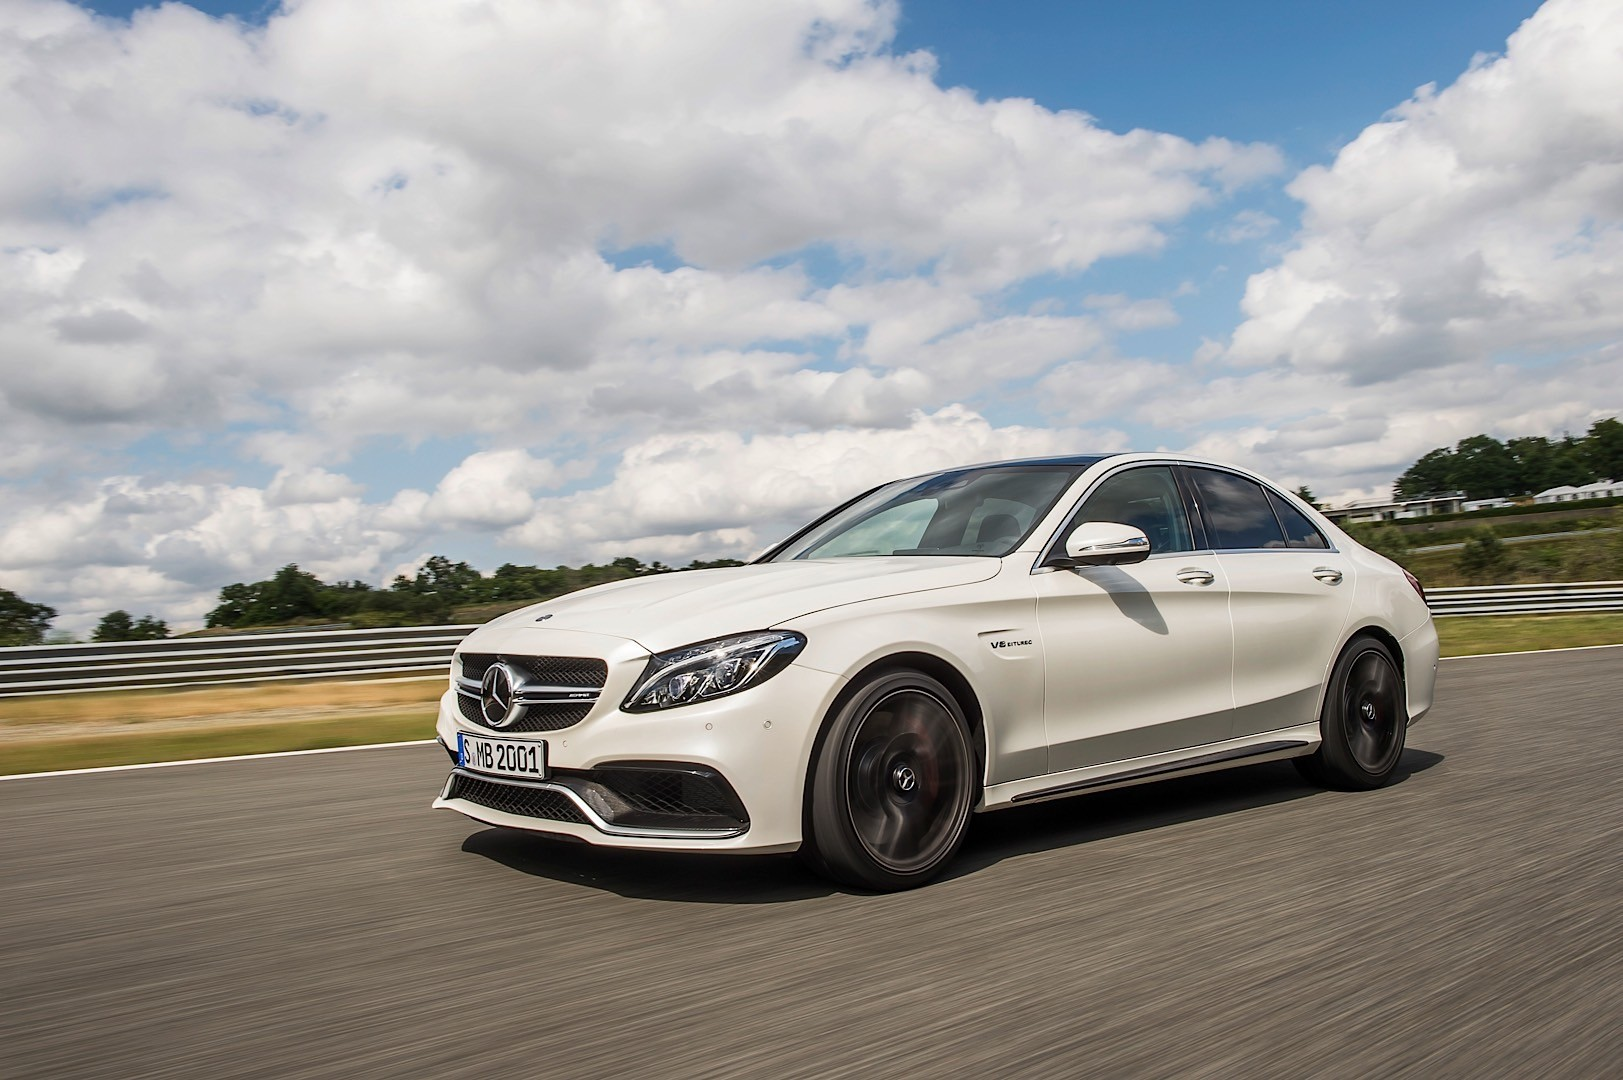 Mercedes amg c63 us pricing starts at 63 900 autoevolution for Mercedes benz c amg price